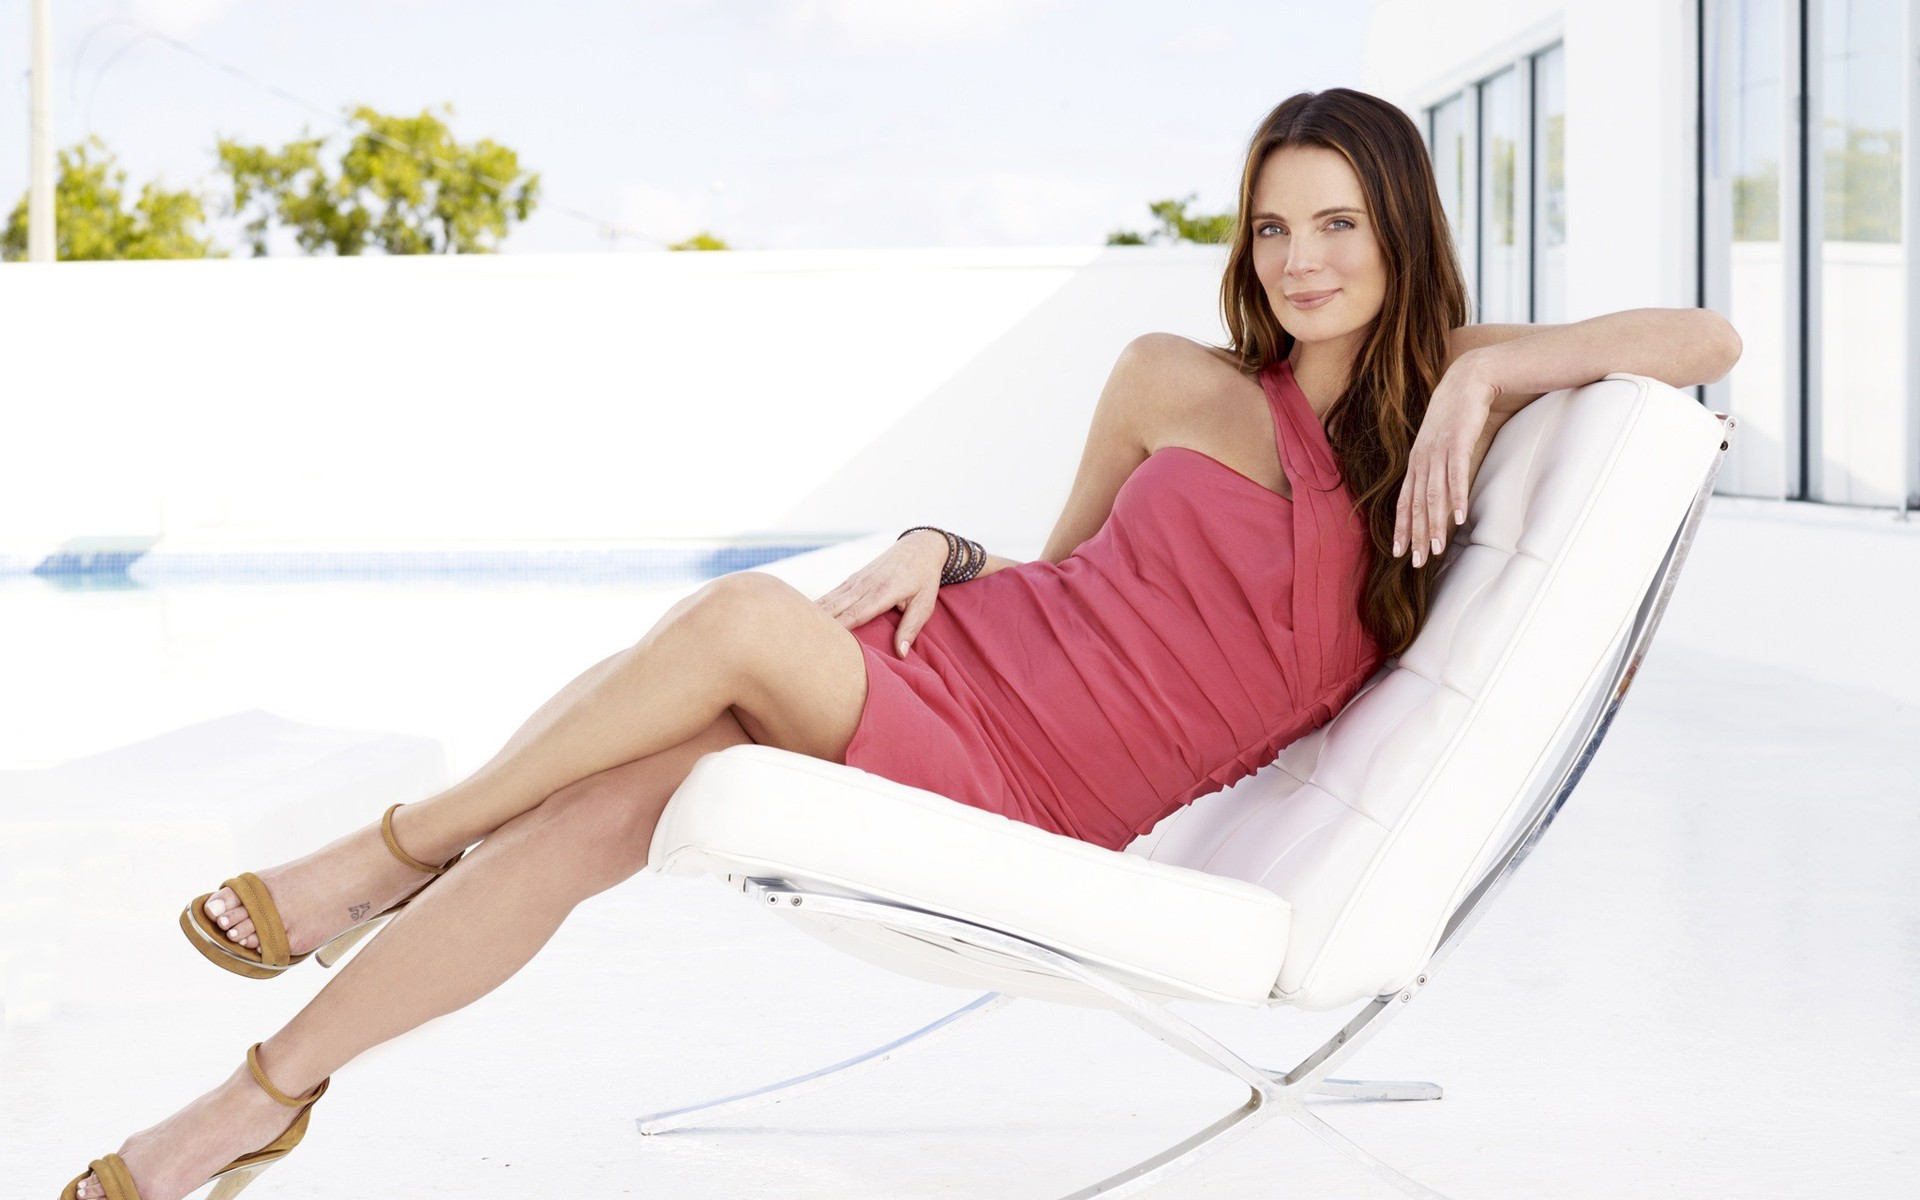 Gabrielle Anwar Wallpapers High Quality Download 1920x1200